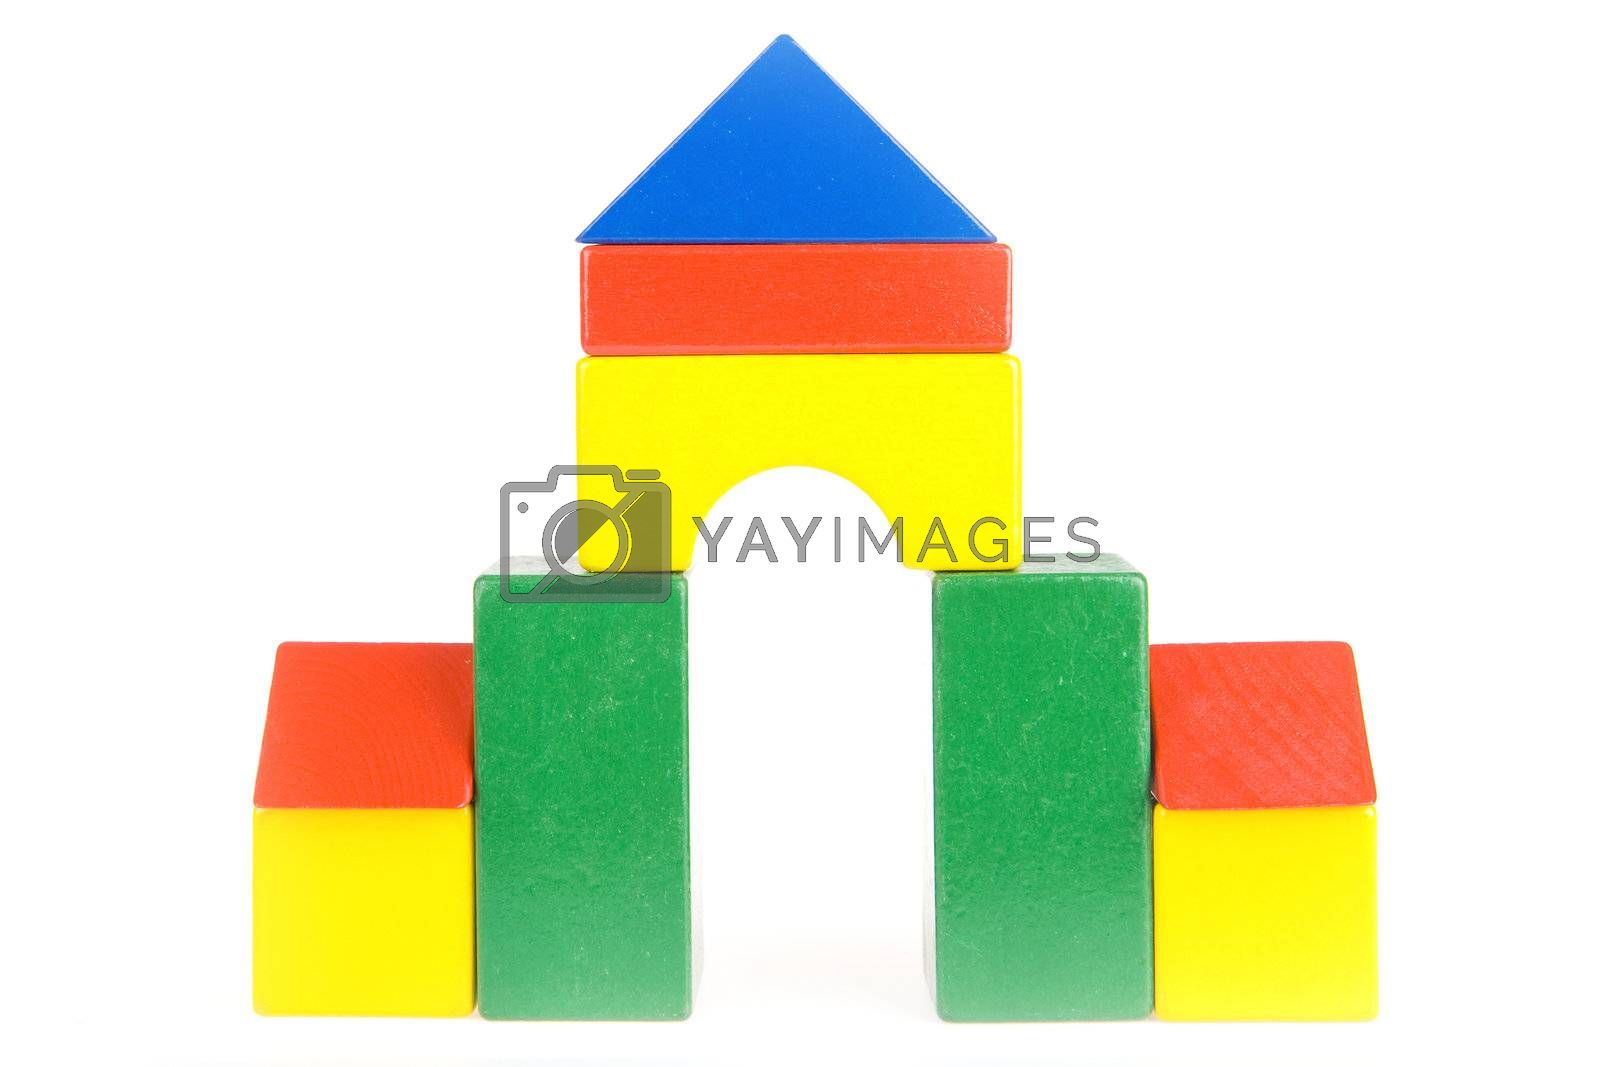 Royalty free image of blocks by Gabees